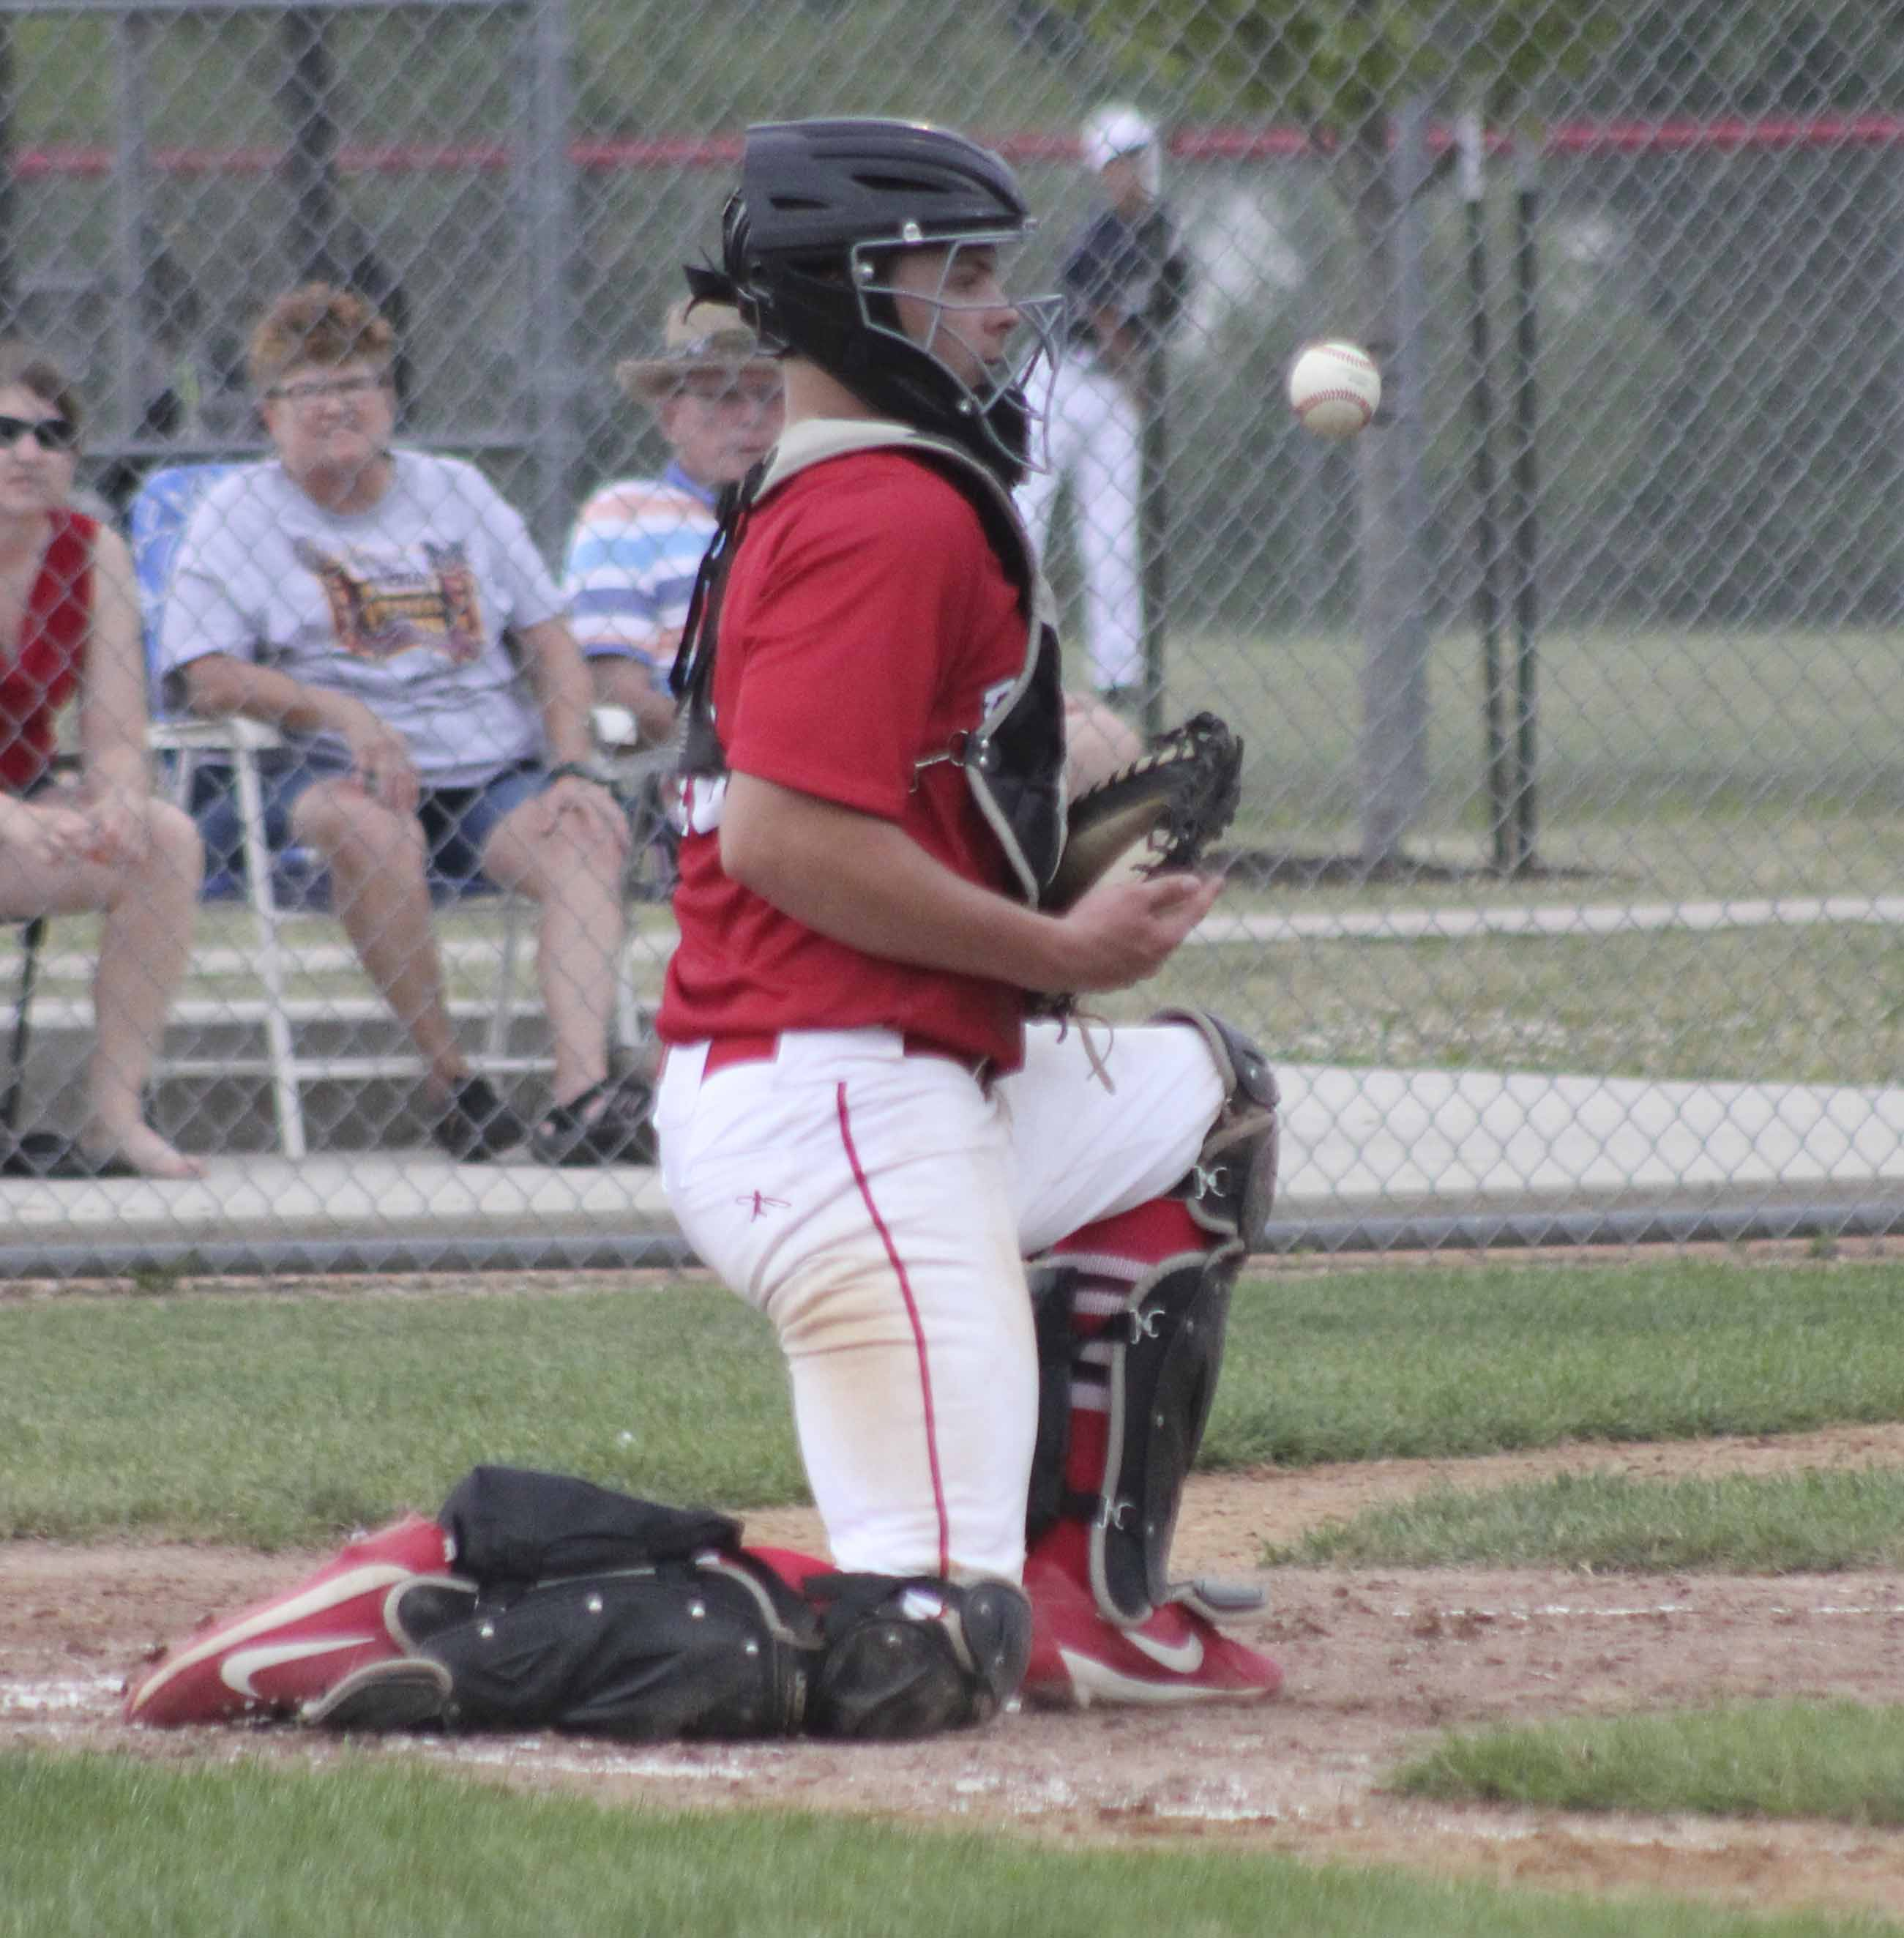 Monticello junior baseball player Jacob Manternach was voted as the First Team All-State catcher for Class 2A by the Iowa Newspaper Association (INA). Manternach, shown blocking a throw this past season, batted .455 with six home runs, 12 doubles, 41 runs batted in, and went 17-for-17 in stolen base attempts. He had an on-base percentage of .518 and a slugging percentage of .758. (Express file photos)